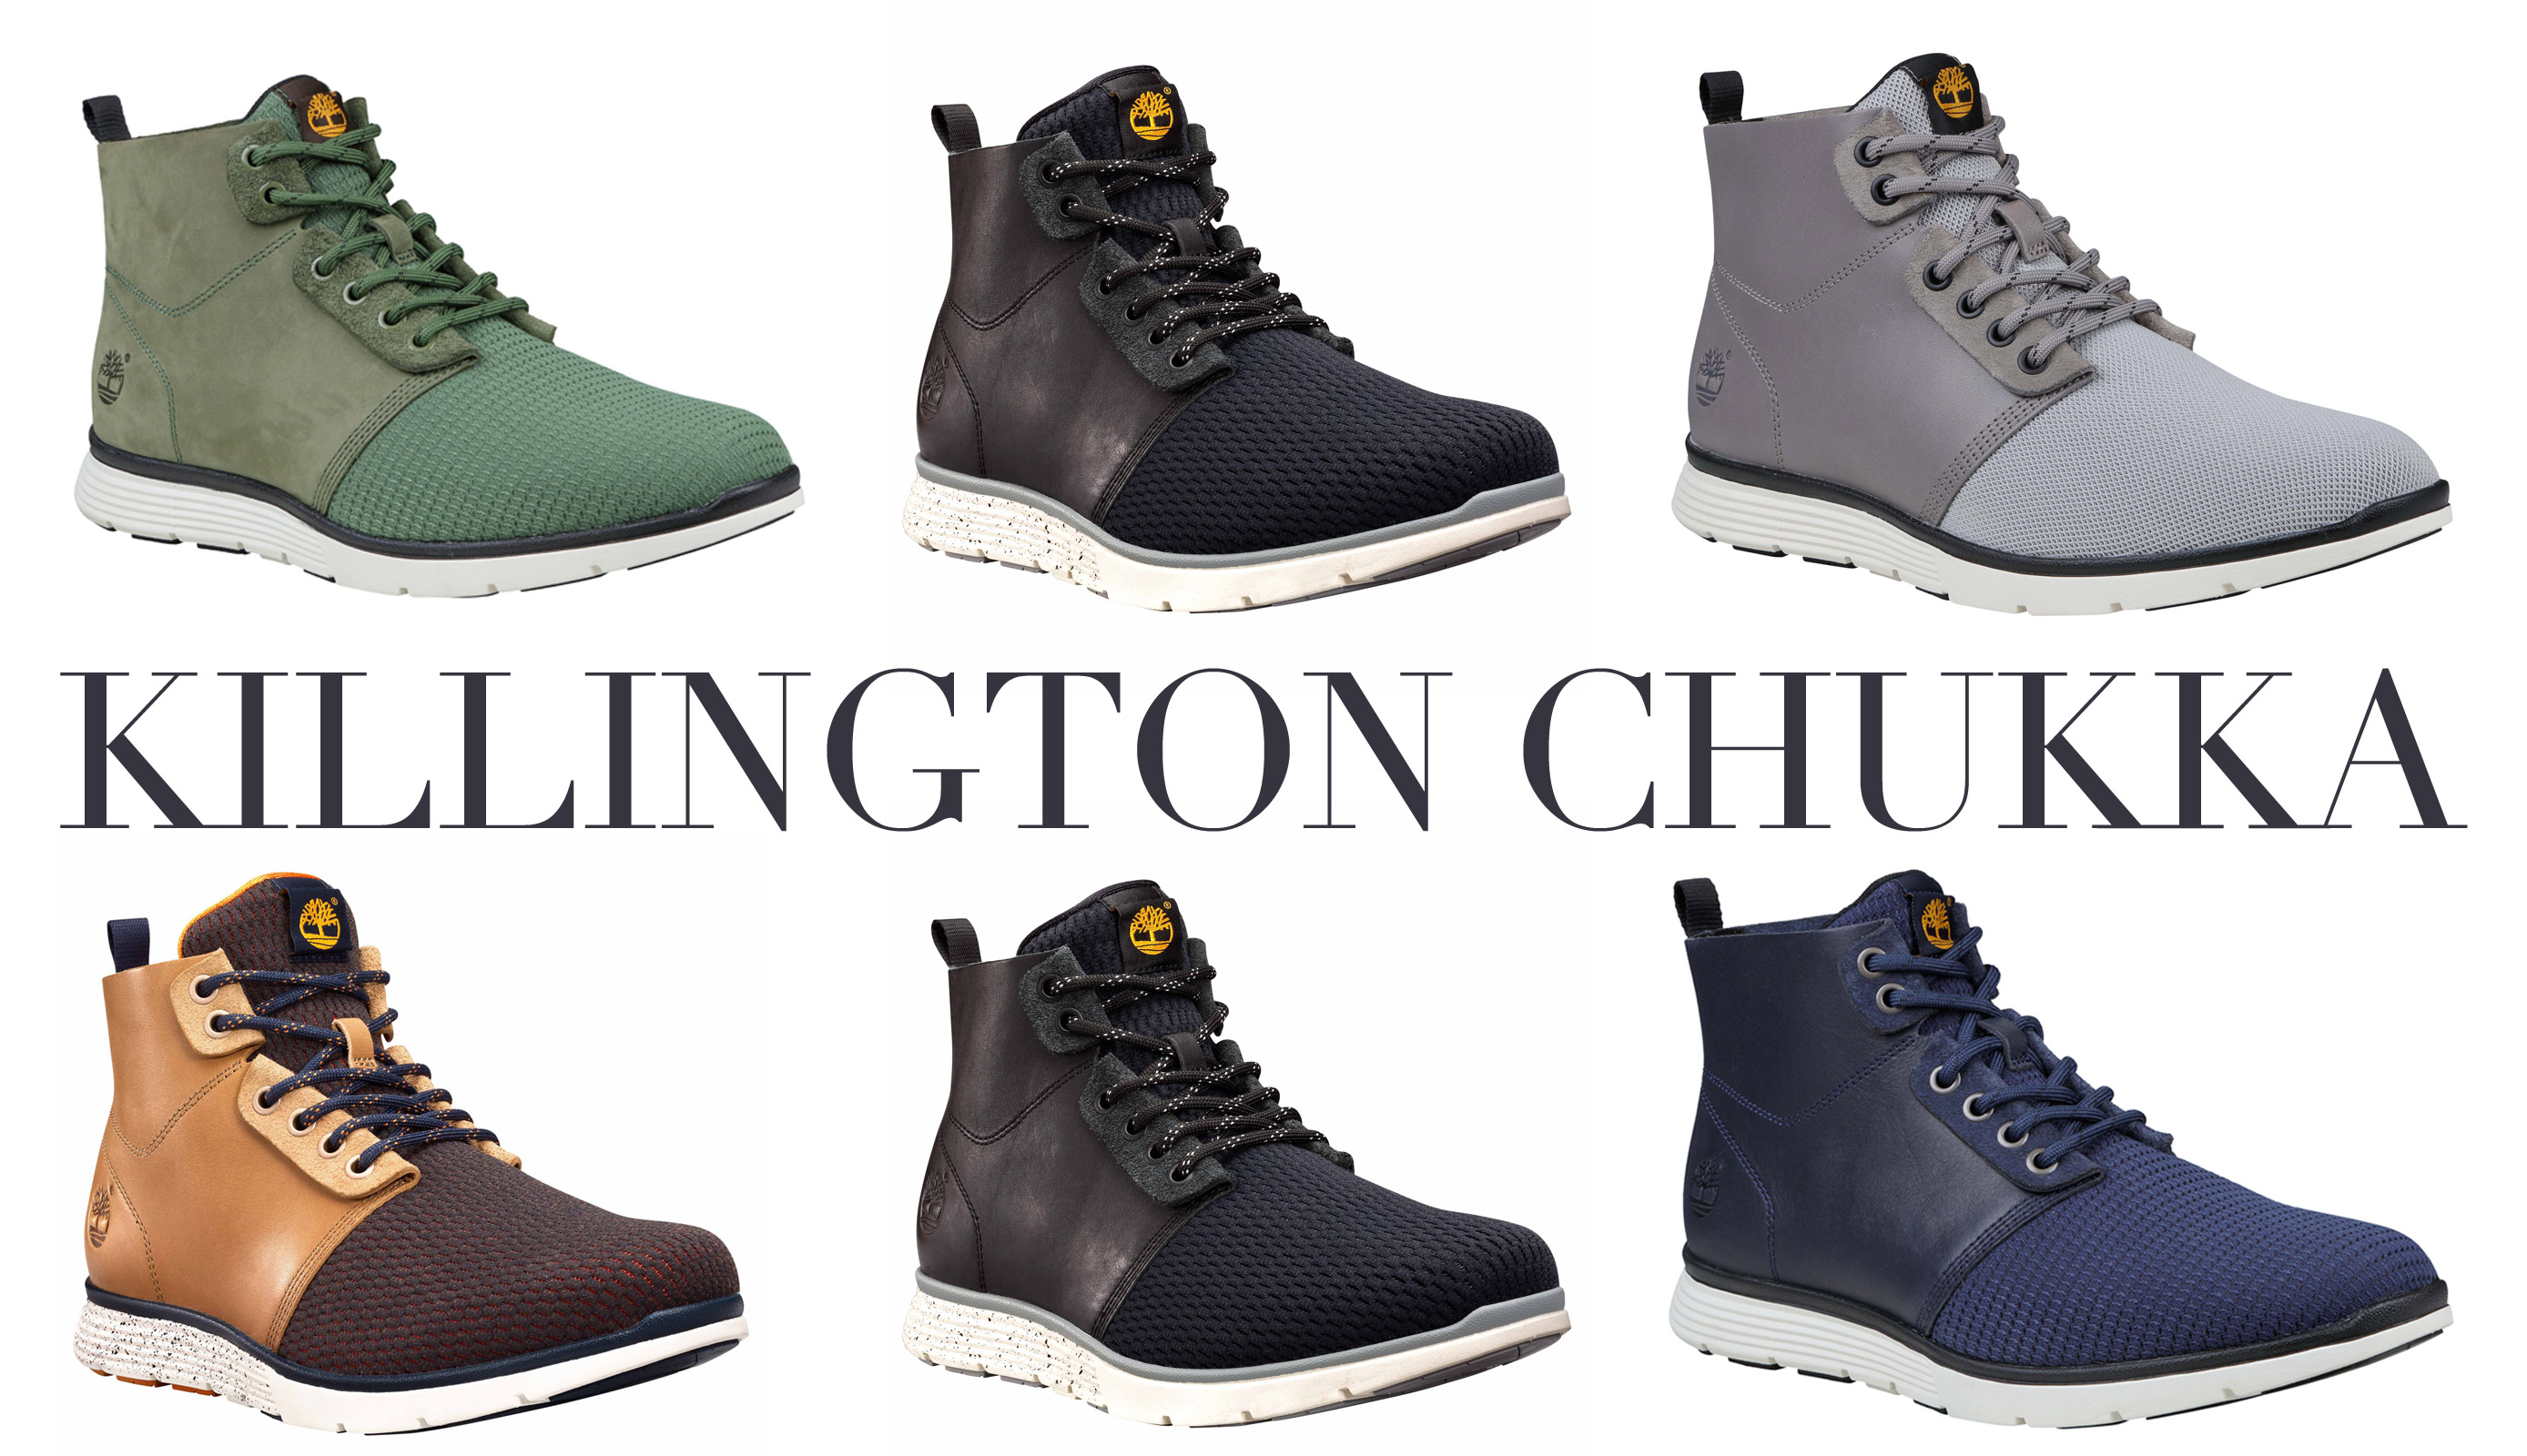 KillingtonChukka